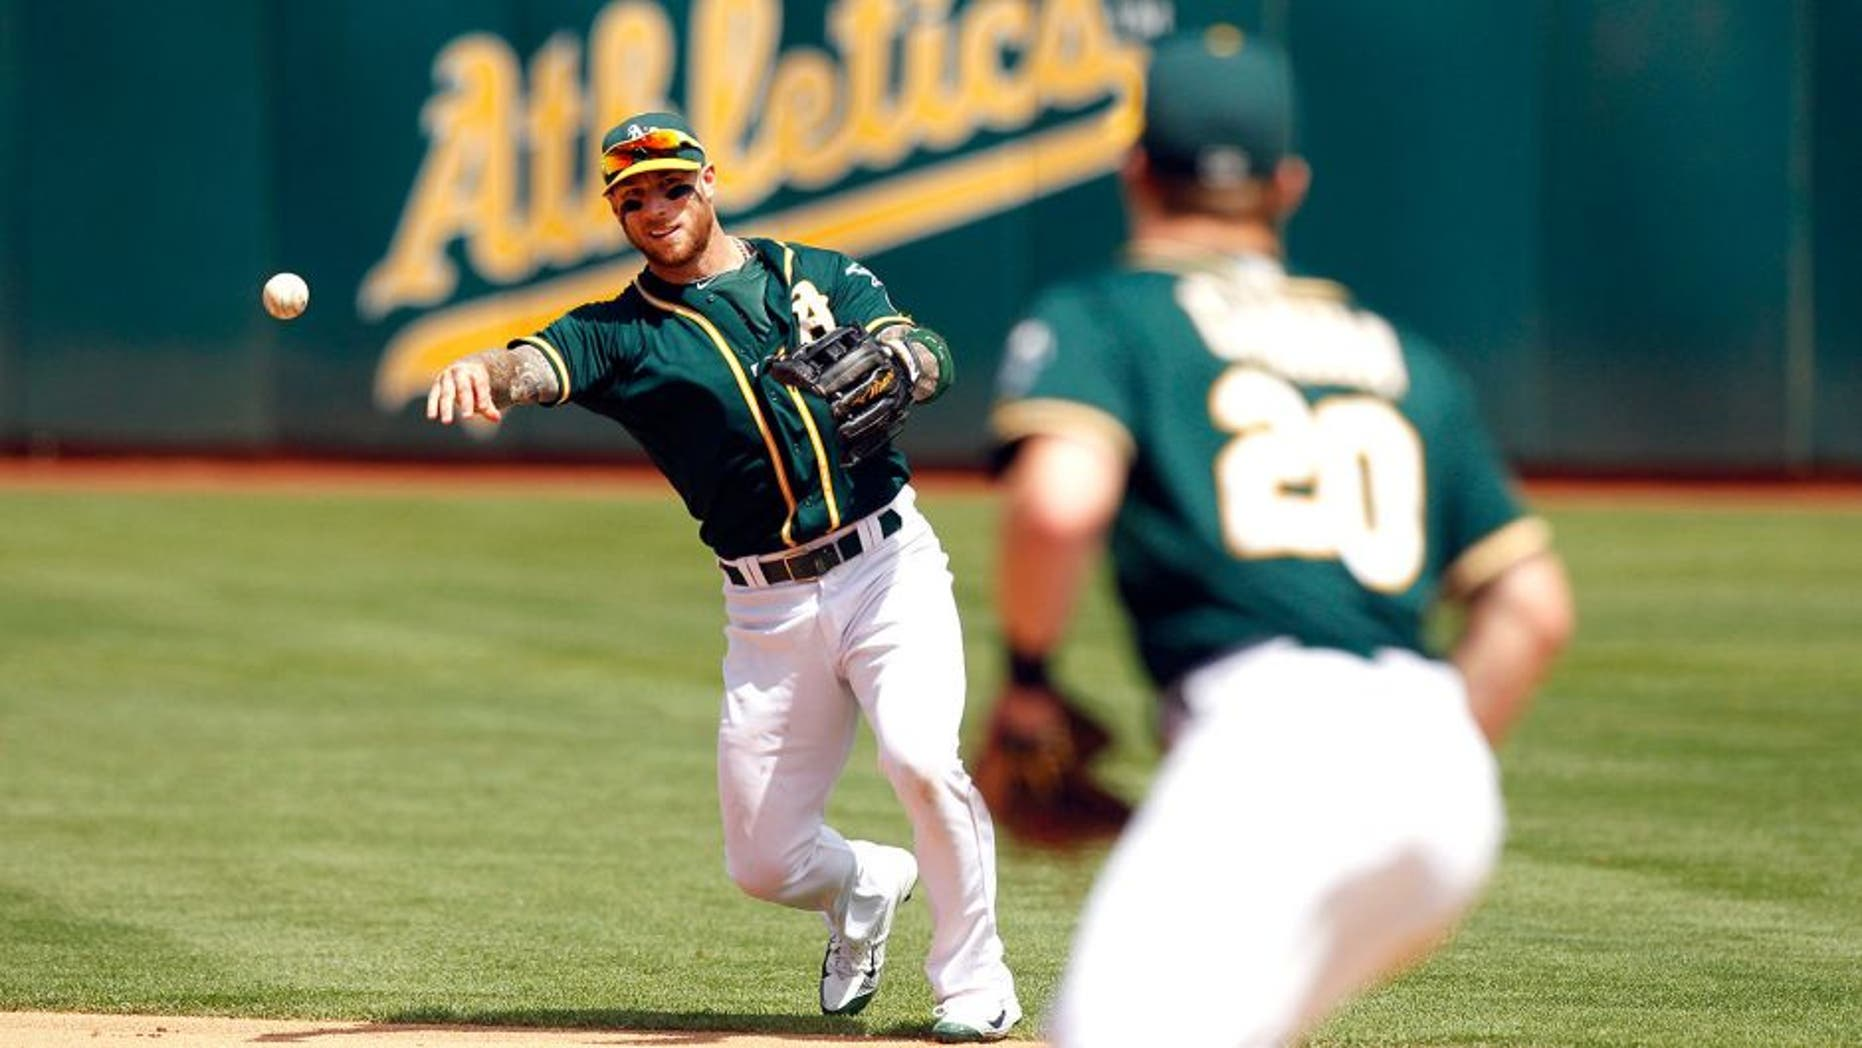 Aug 23, 2015; Oakland, CA, USA; Oakland Athletics infielder Brett Lawrie (15) throws the ball to first to record an out against the Tampa Bay Rays in the fifth inning at O.co Coliseum. The Athletics defeated the Rays 8-2. Mandatory Credit: Cary Edmondson-USA TODAY Sports